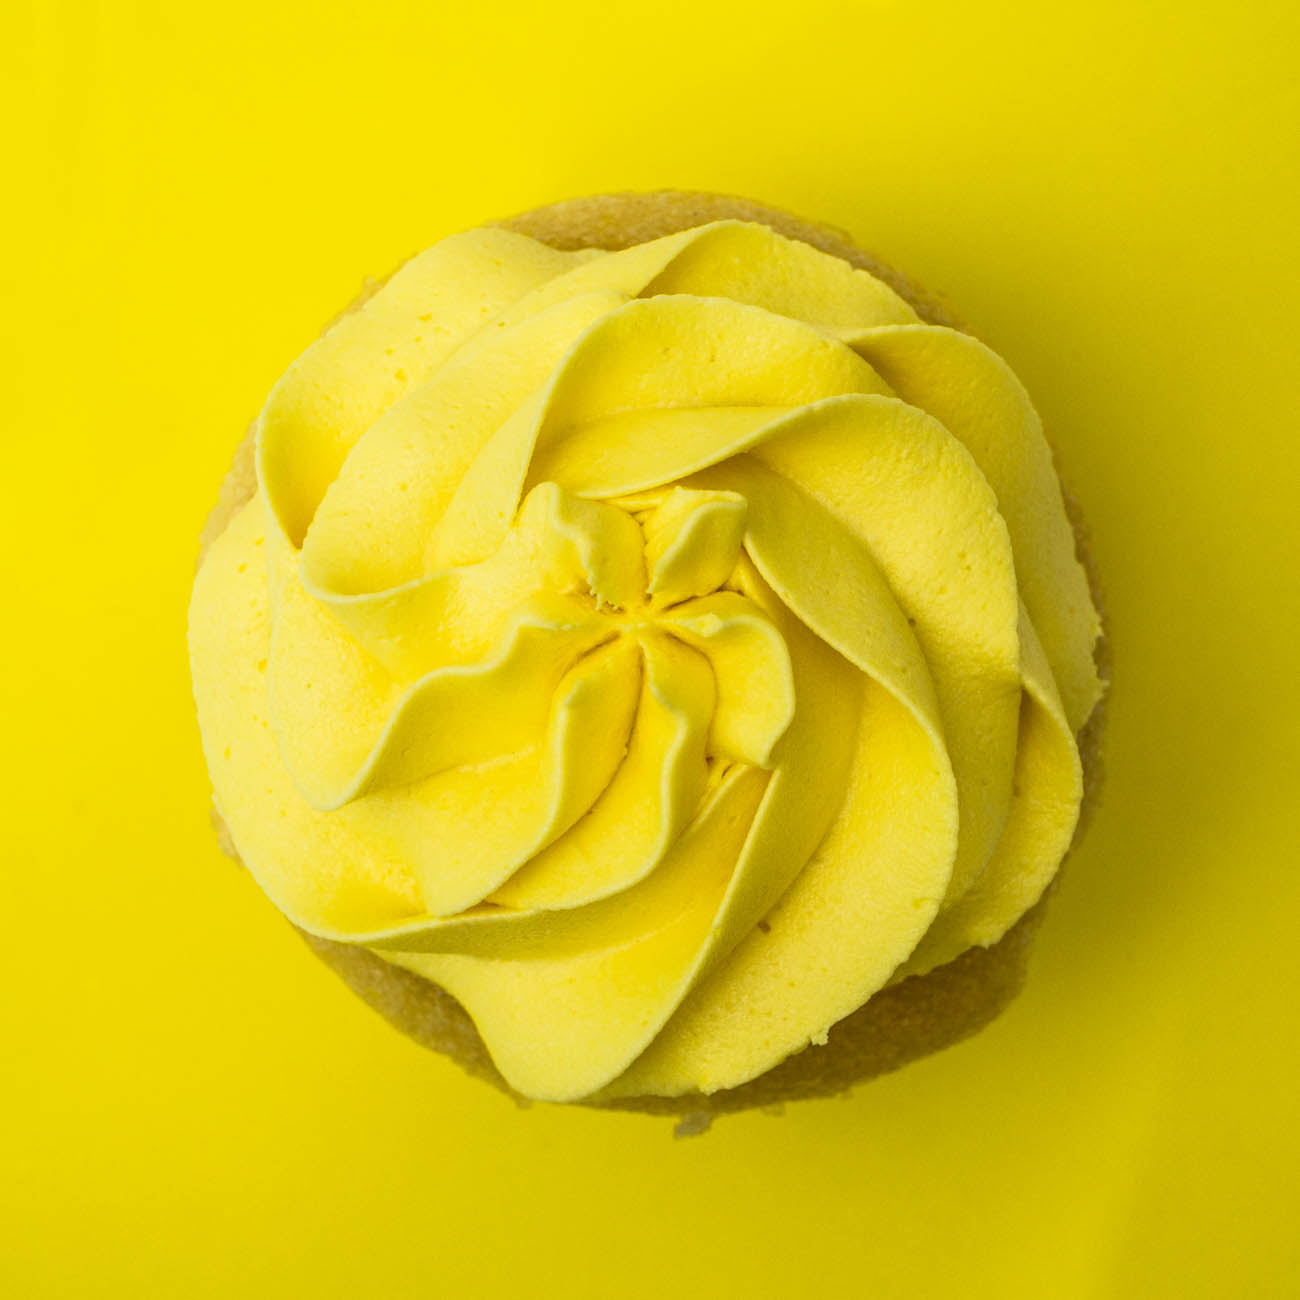 Lemon-licious cupcake{ }from Abby Girl Sweets / Image: Catherine Viox // Published: 1.4.20